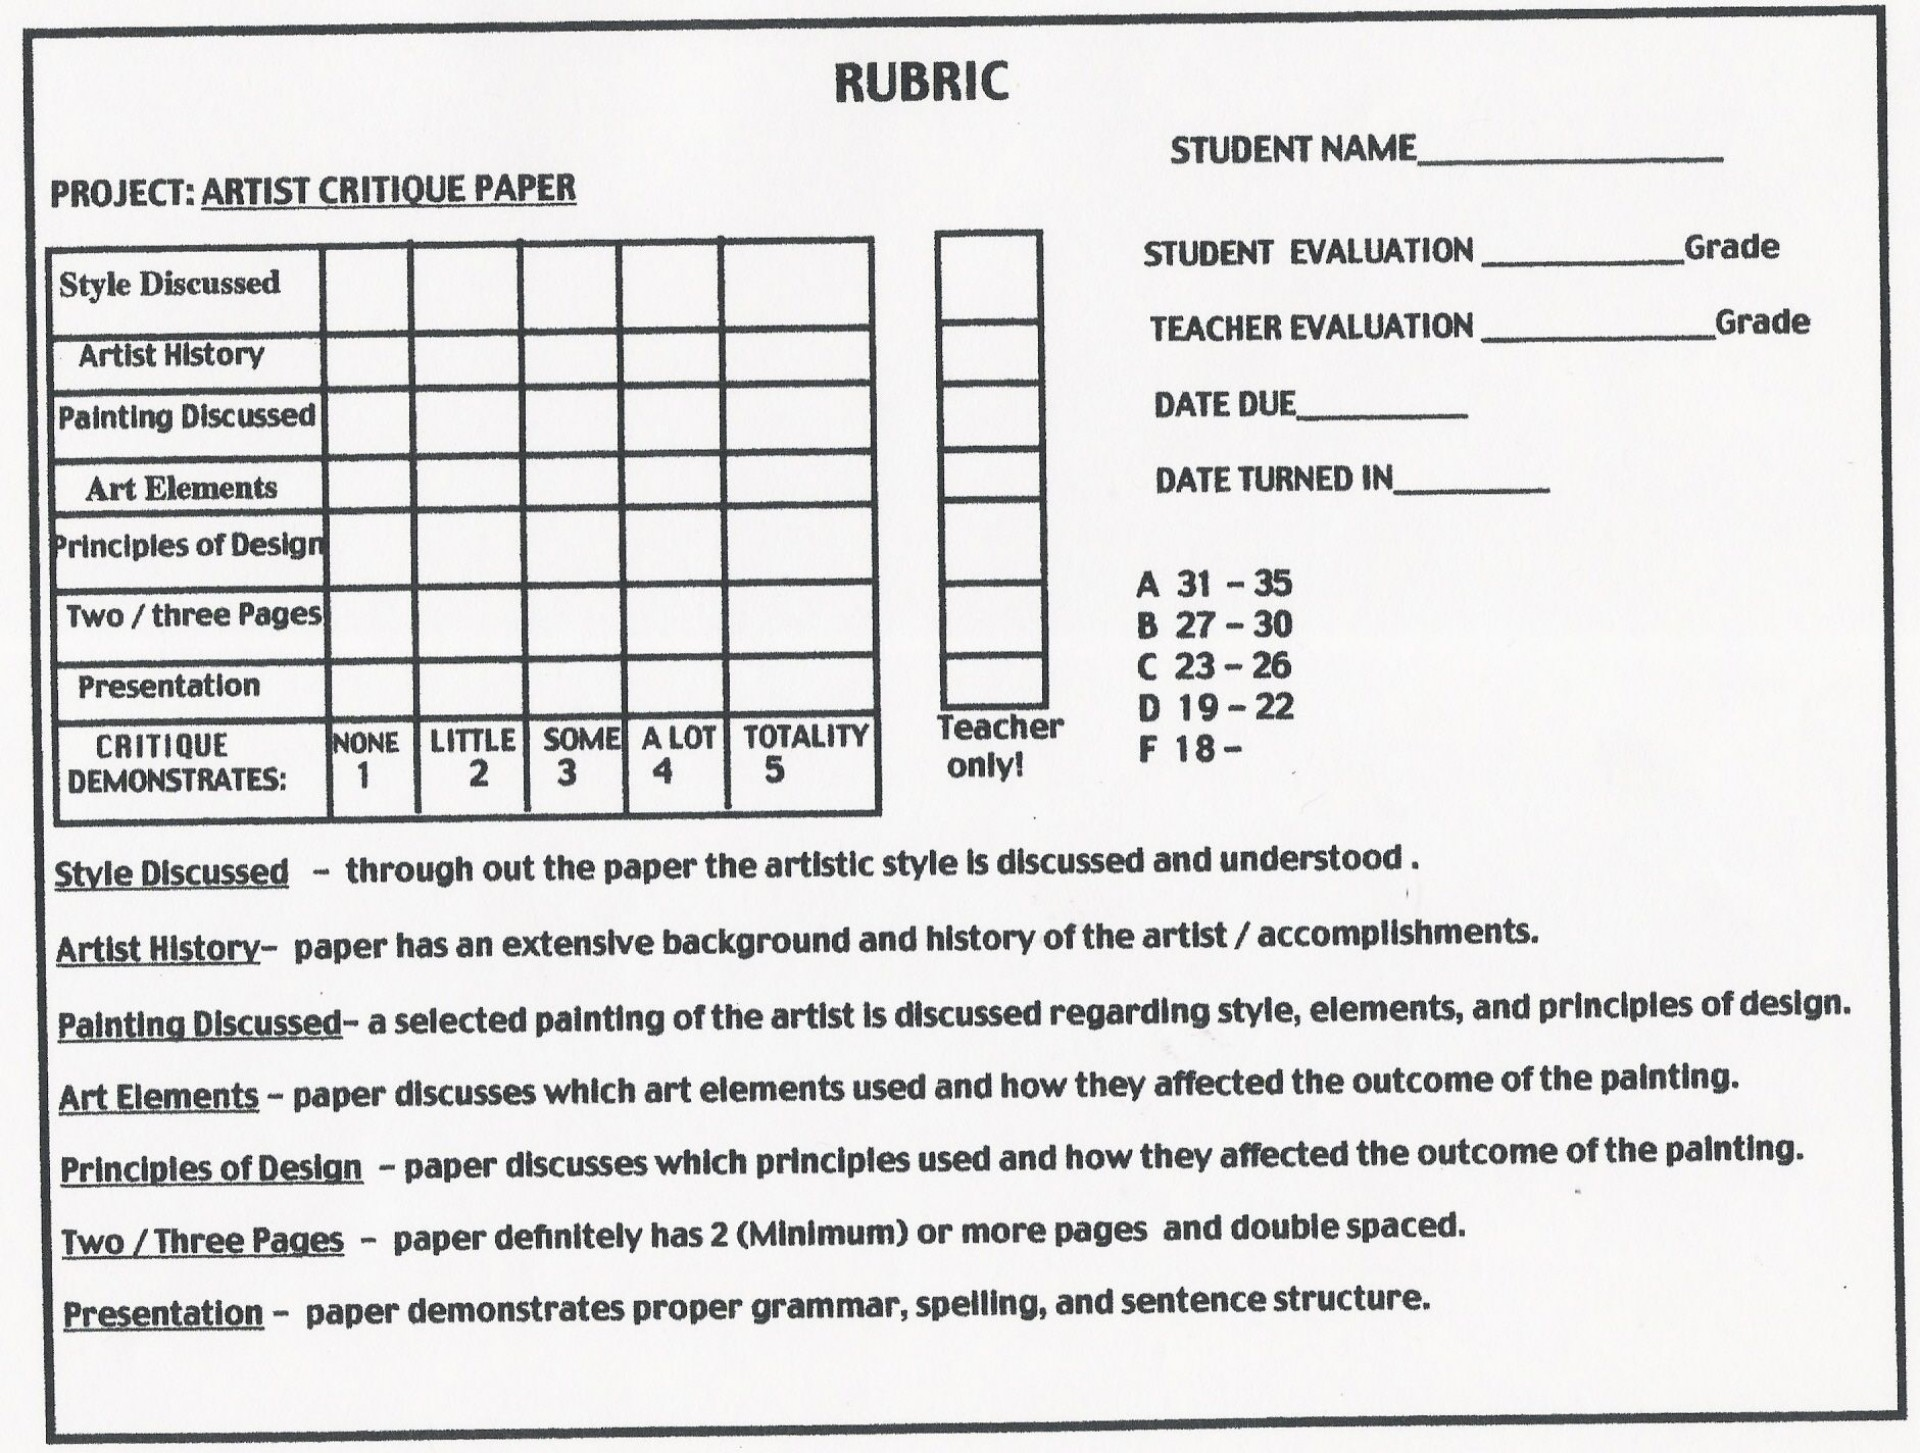 001 Art History Research Paper Rubric Unique 1920